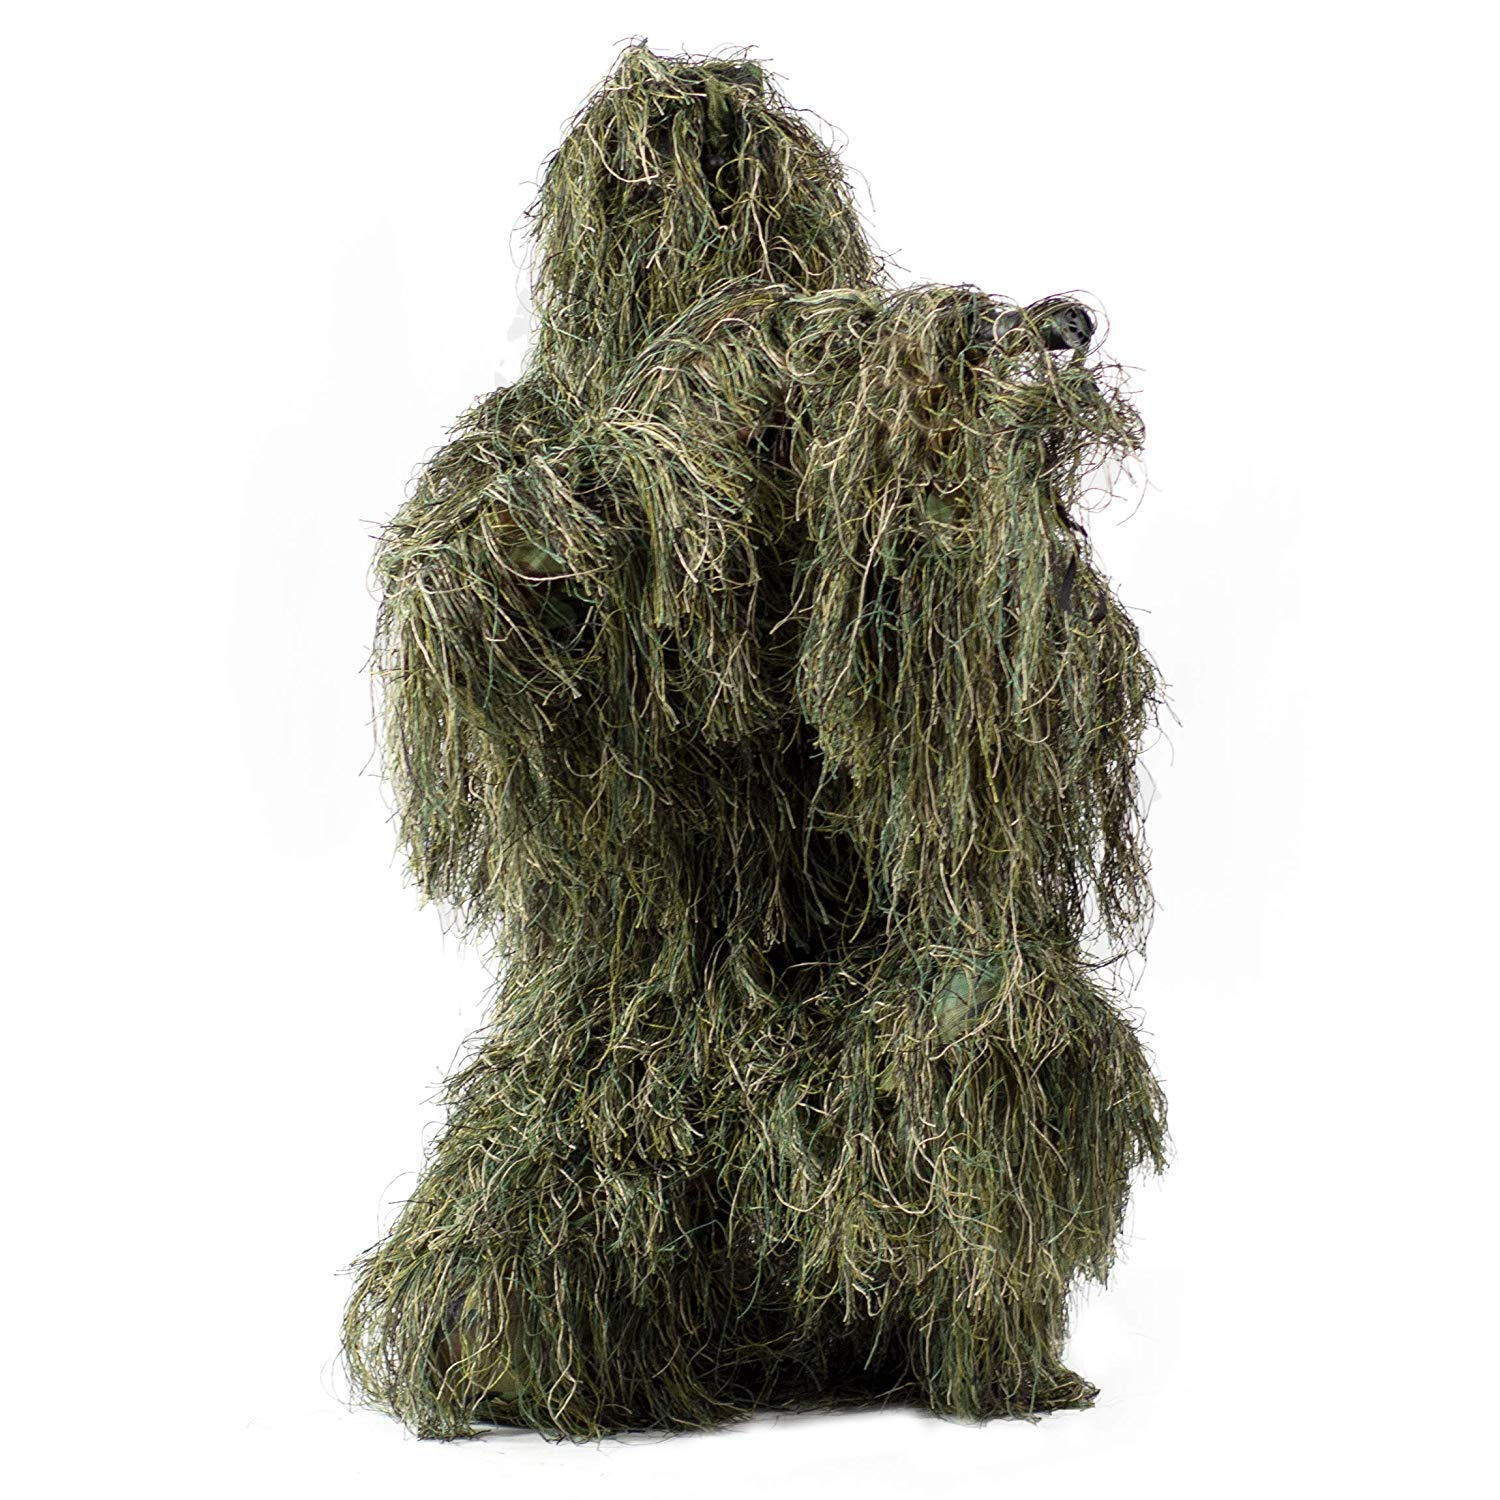 HaoFst Big for 3 Days Ghillie Suit Camo Woodland Camouflage Forest Hunting 4-Piece + Bag ML